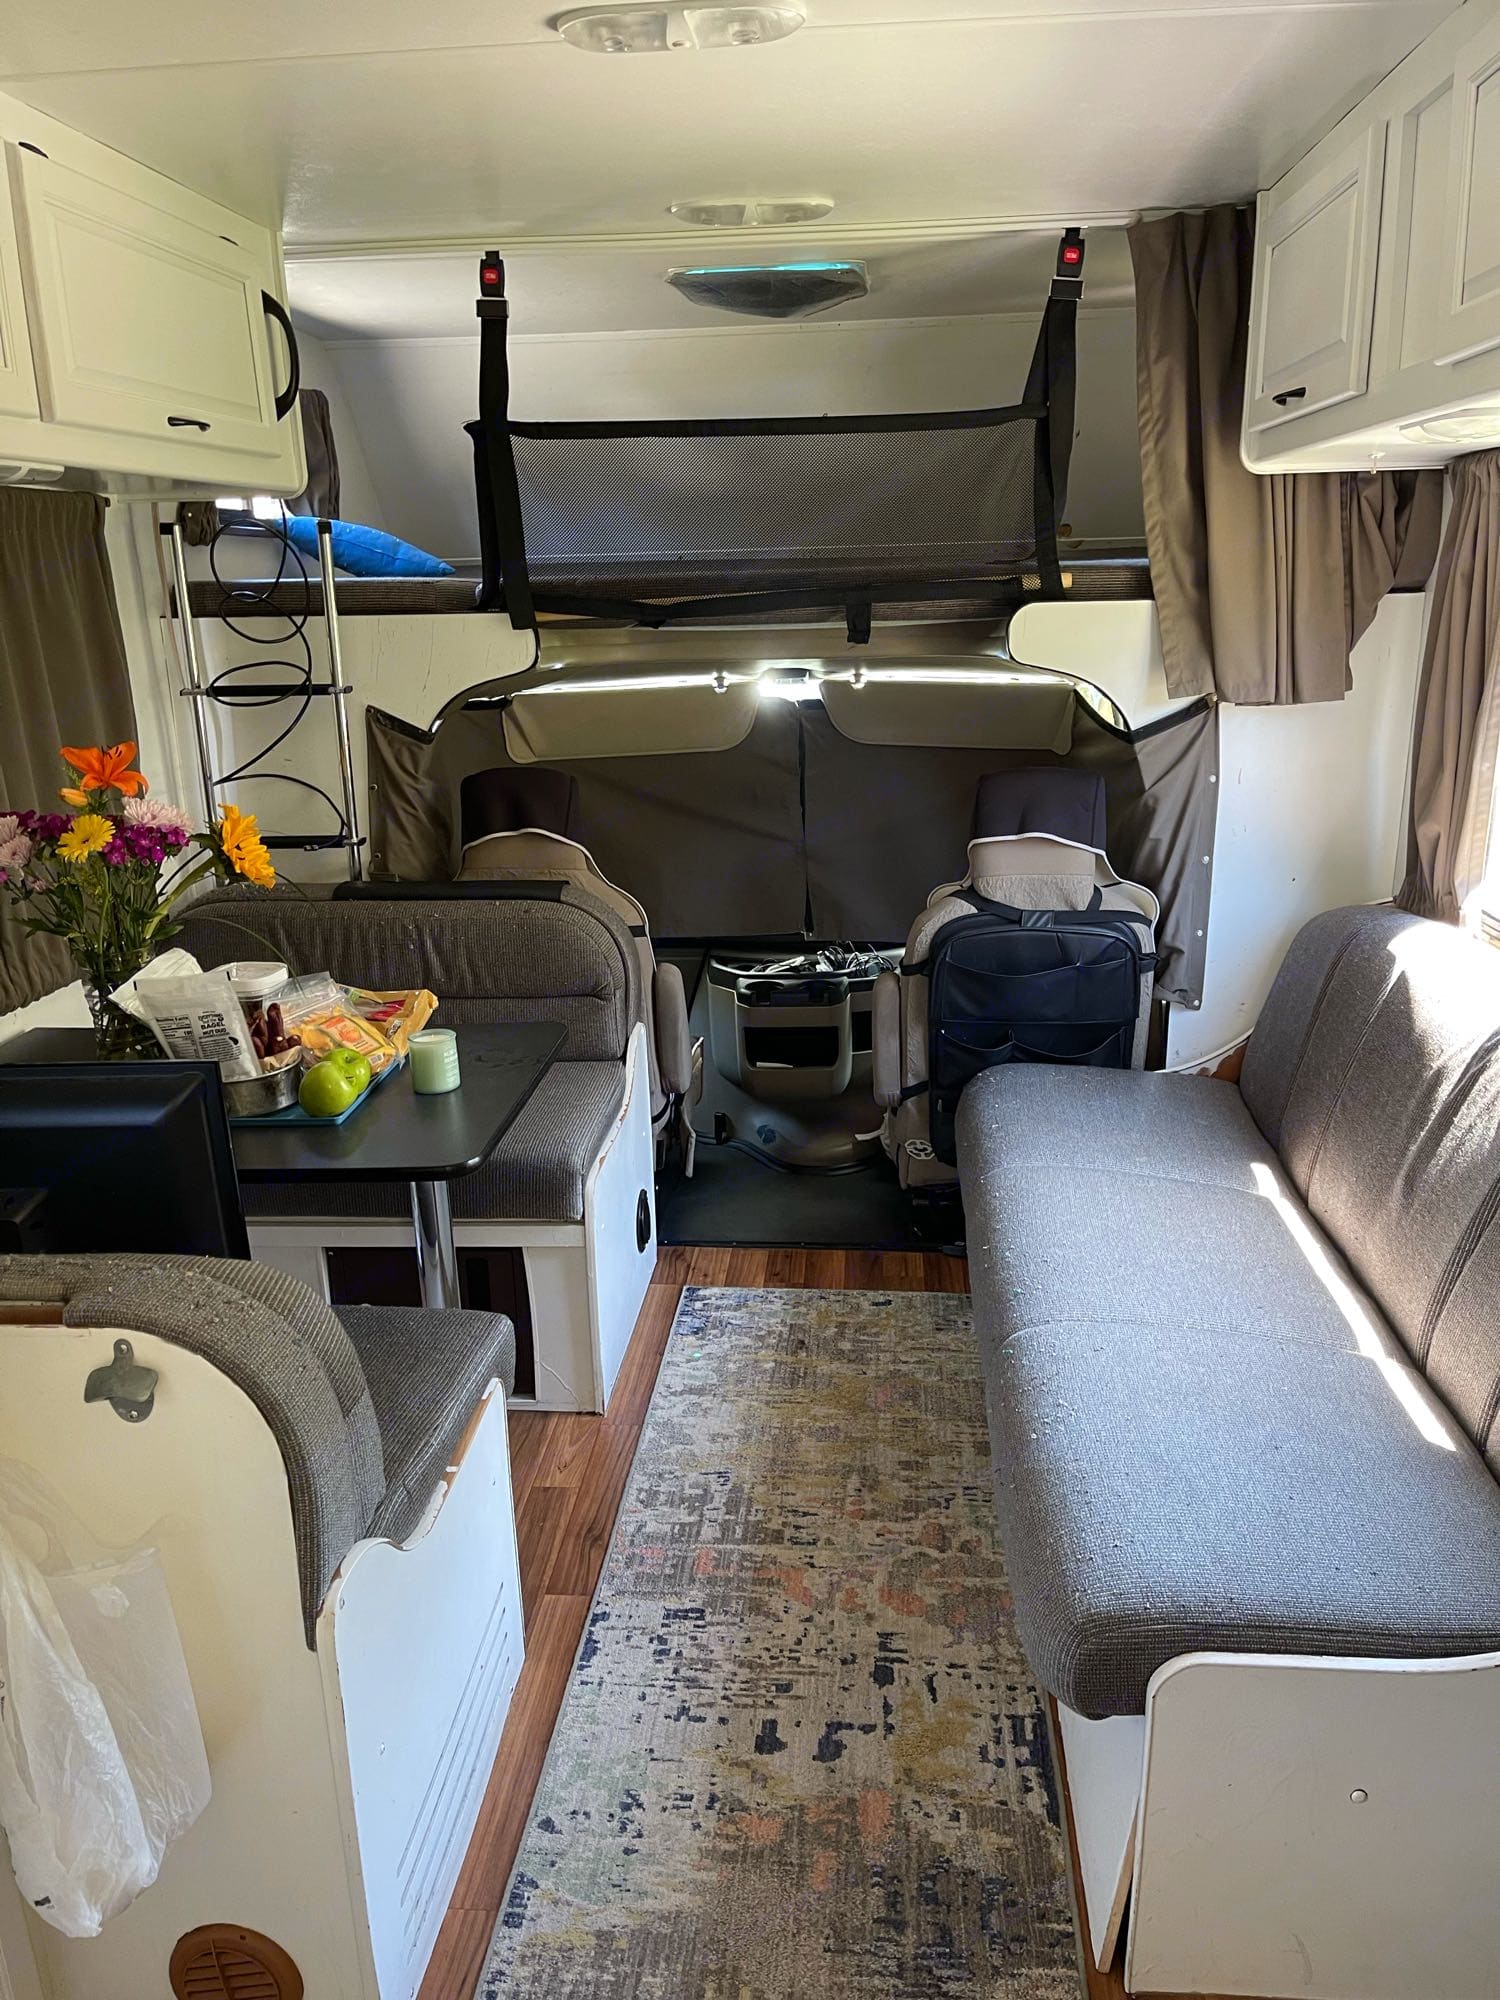 Standing in the kitchen facing the front, curtained up for privacy. The bunk over the cab also has net so falling out (kids or luggage) doesn't happen. Thor Motor Coach Four Winds Majestic 2014